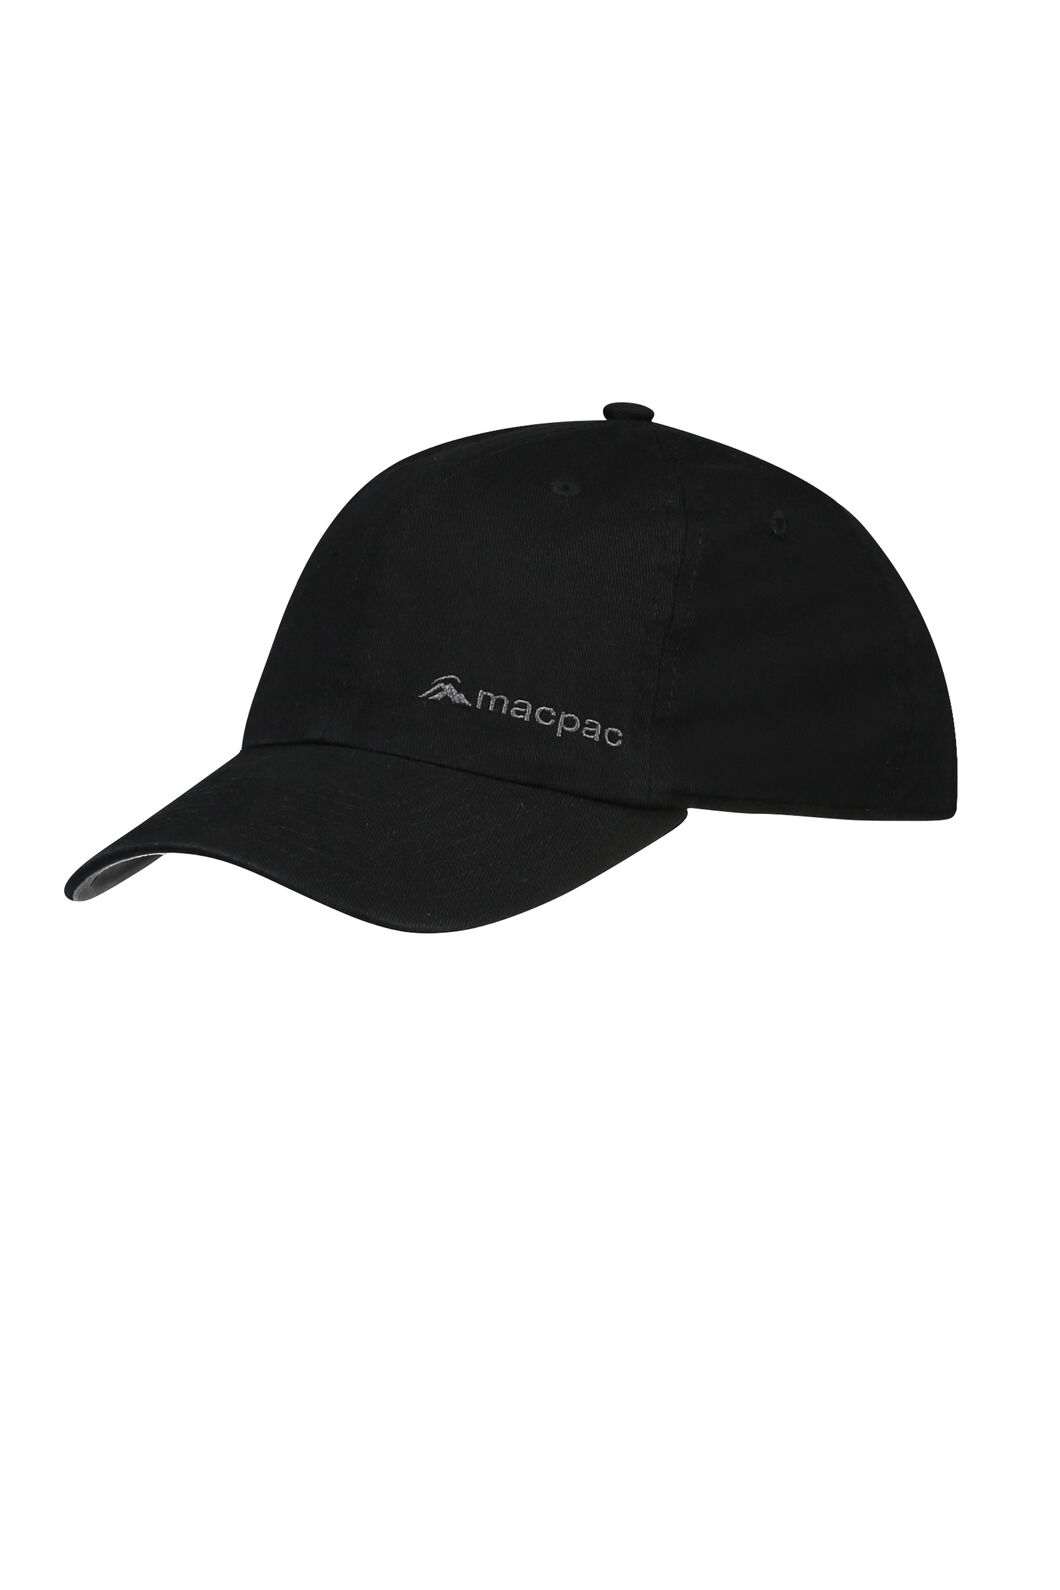 Macpac Cotton Cap, Black, hi-res